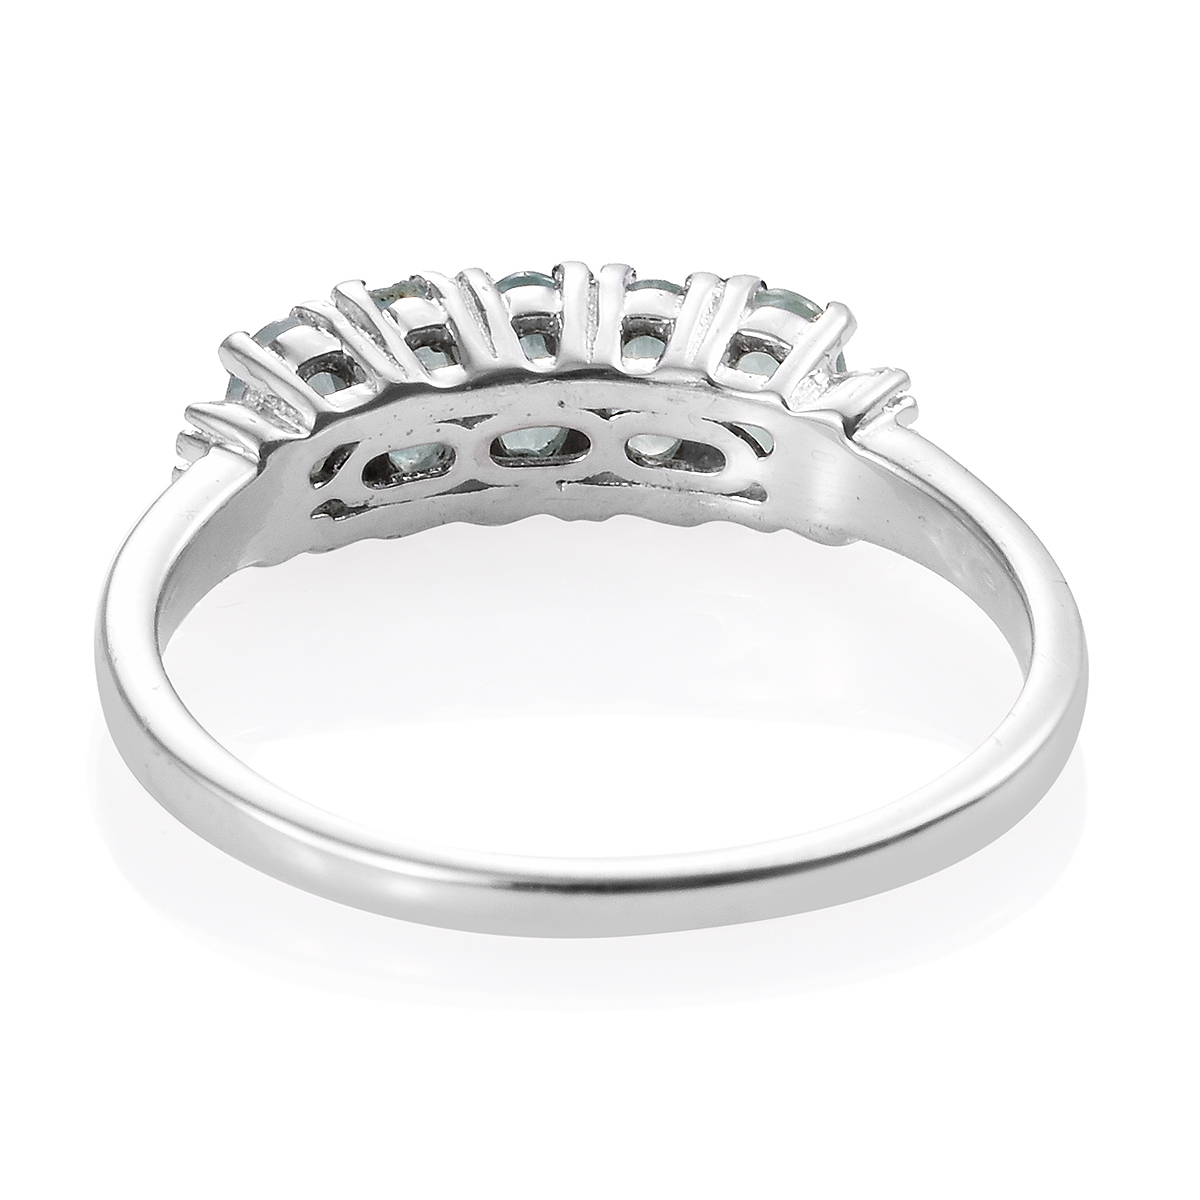 Grandidierite, Diamond Accent Ring in Platinum Over Sterling Silver (Size 8.0) 1.21 ctw